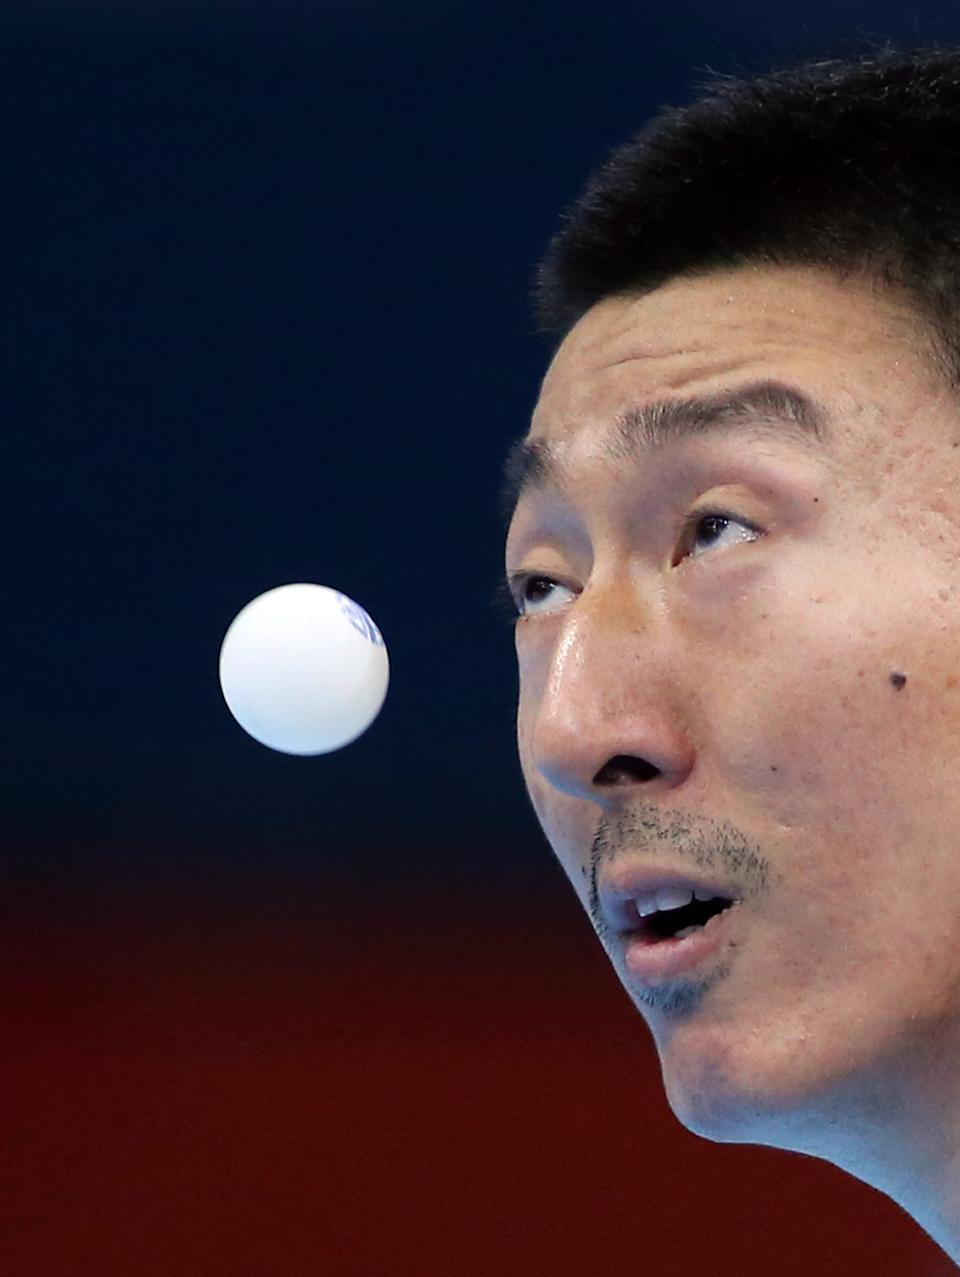 Oh Sangeun of South Korea competes against Kim Hyok Bong of North Korea  during men's team table tennis competition at the 2012 Summer Olympics, Saturday, Aug. 4, 2012, in London. (AP Photo/Sergei Grits)